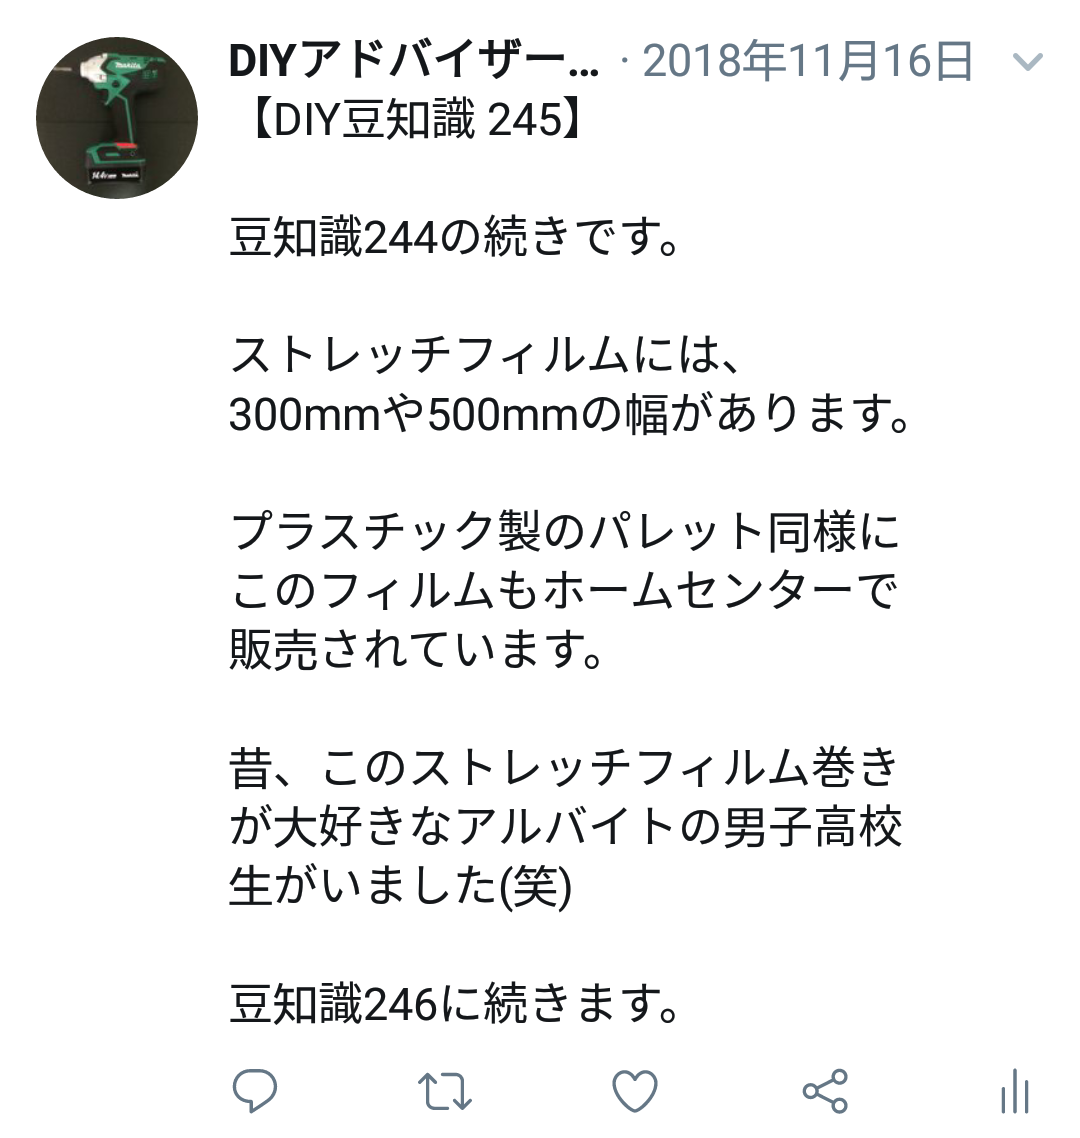 f:id:DIY33:20190408205934p:plain